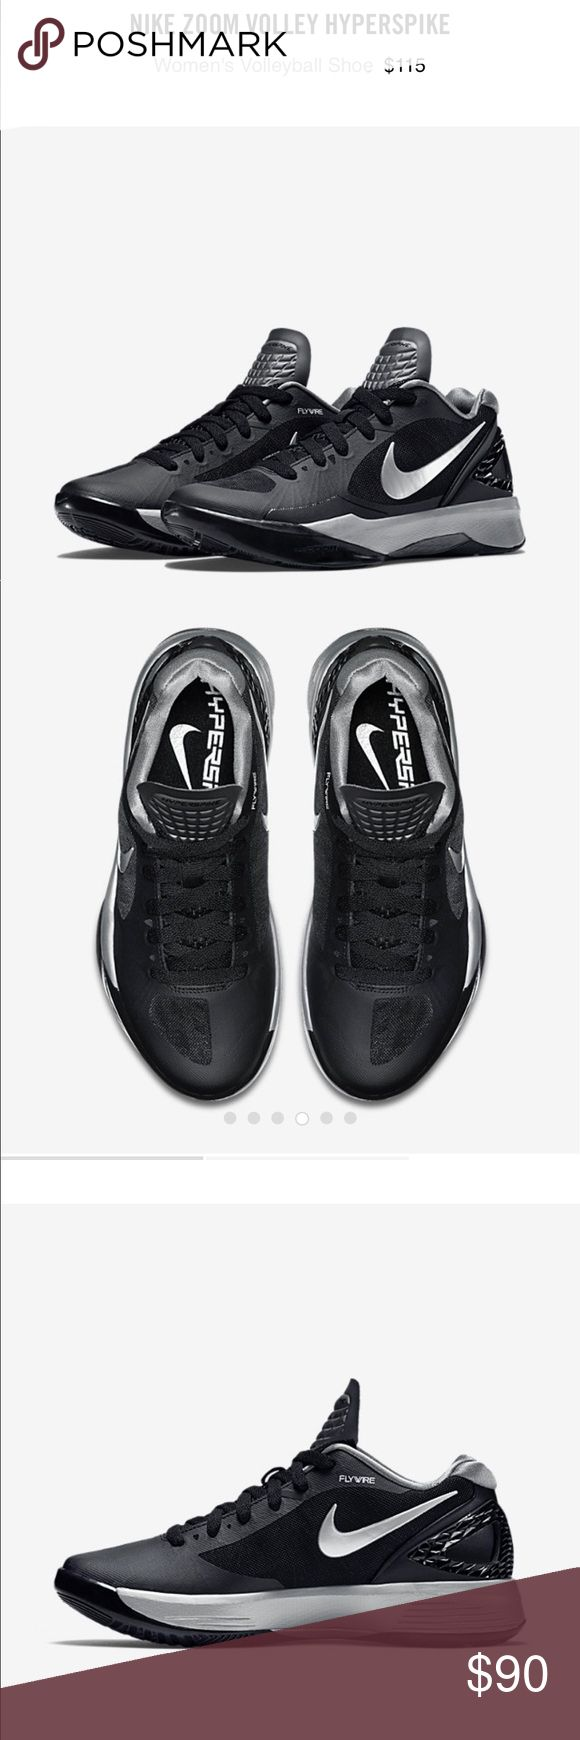 New Black Nike Volleyball Shoes Women39s  Dovalina Builders